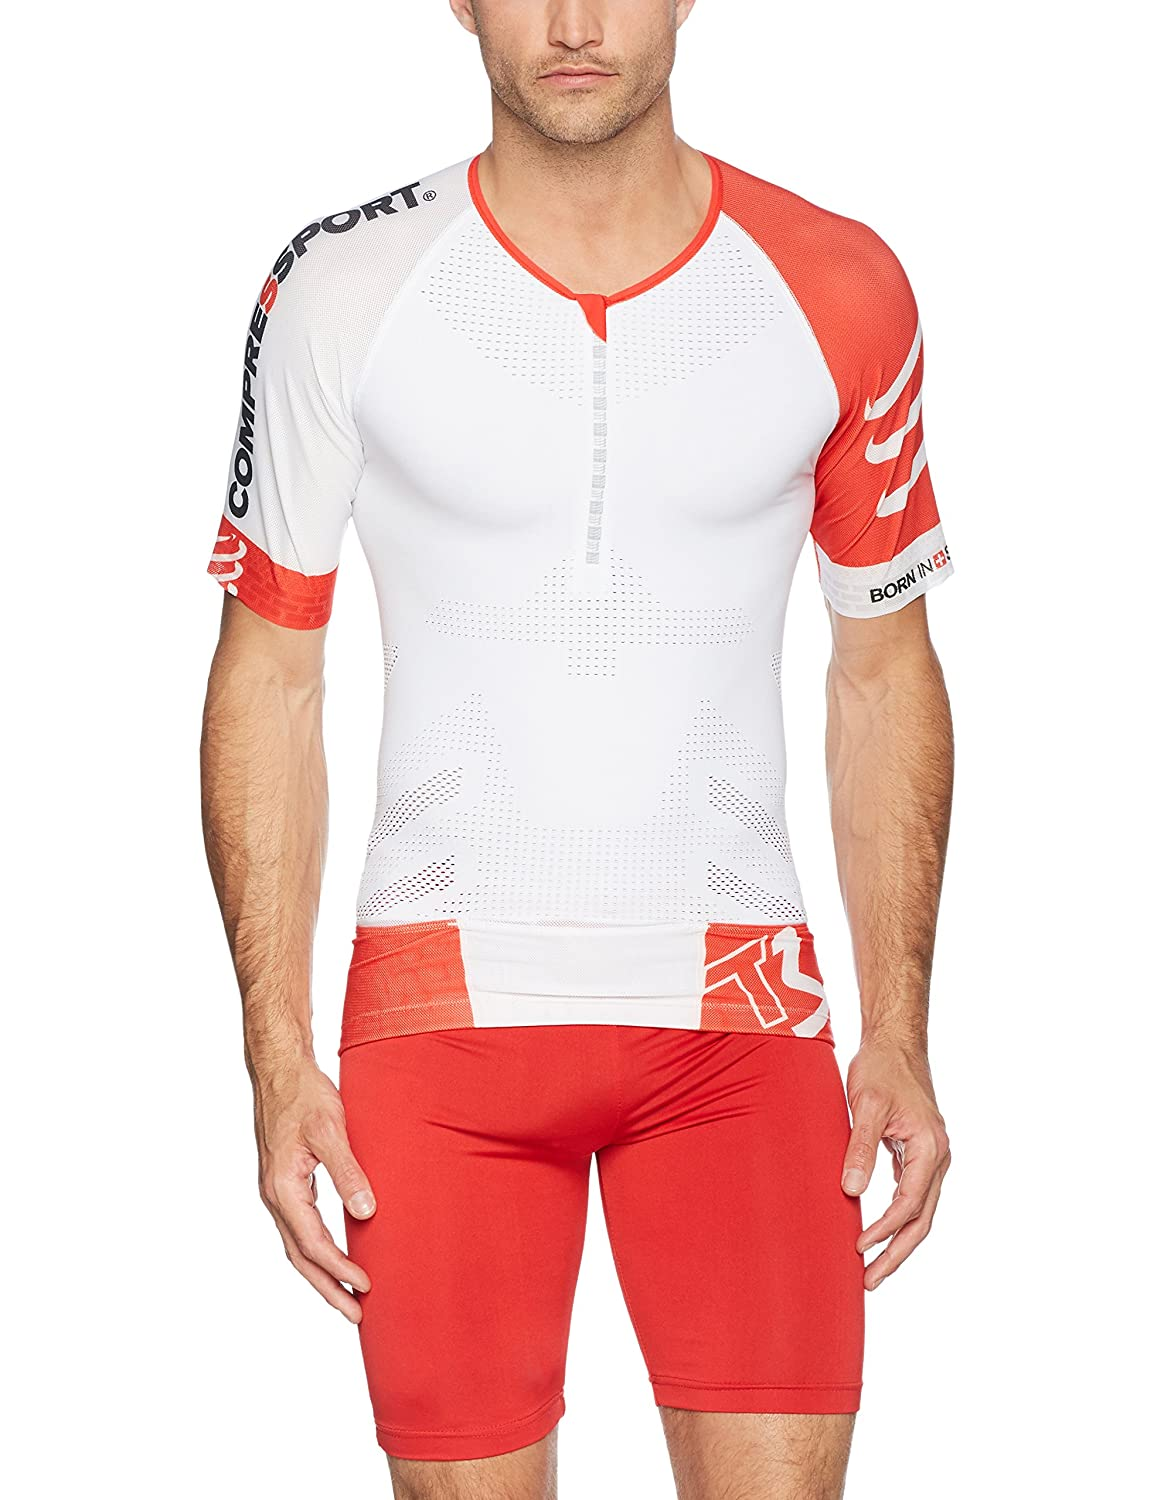 Compressport Tr3 Aero Top Maglia Compressiva da Gara Triathlon Compressport Italia 02400510